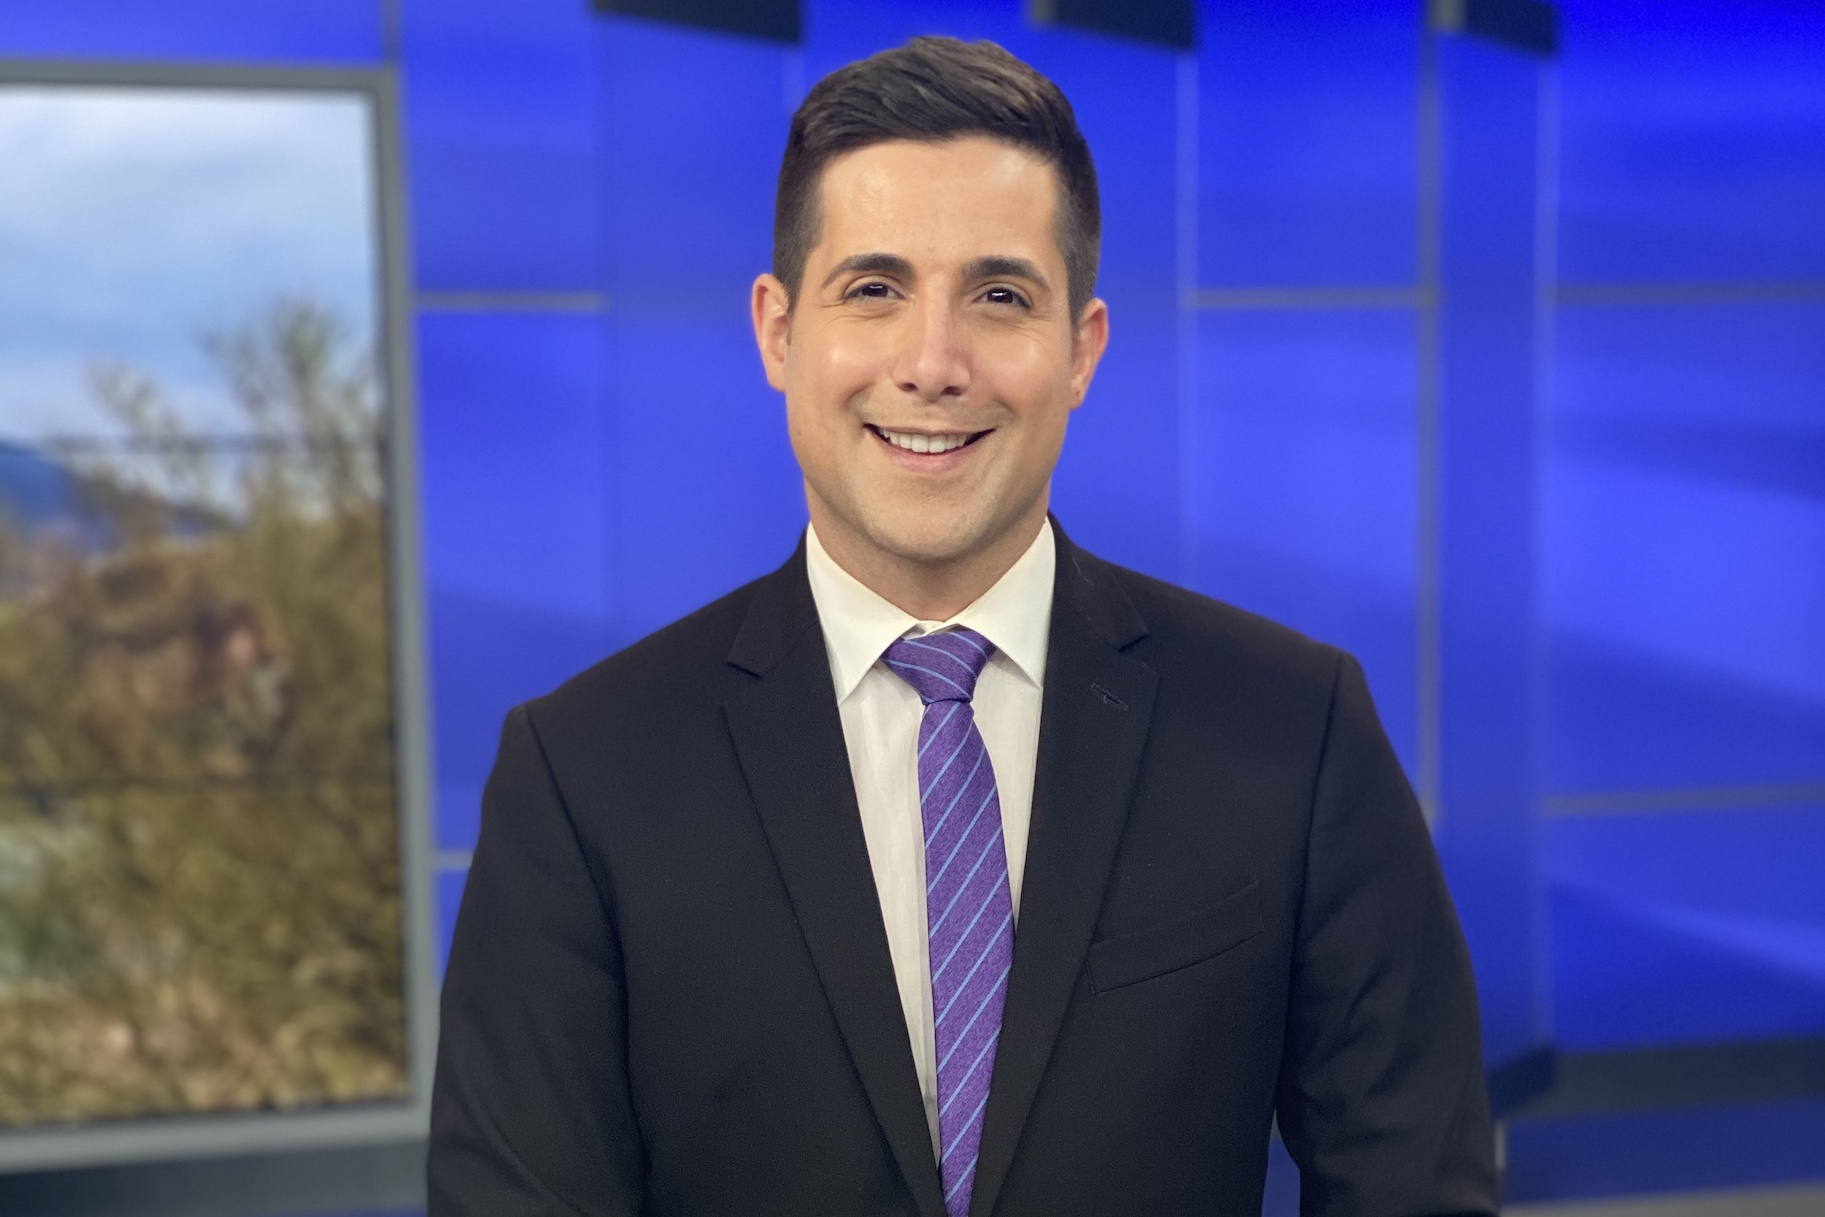 Nick Ciletti, News Anchor and Online MSL Student at USC Gould.